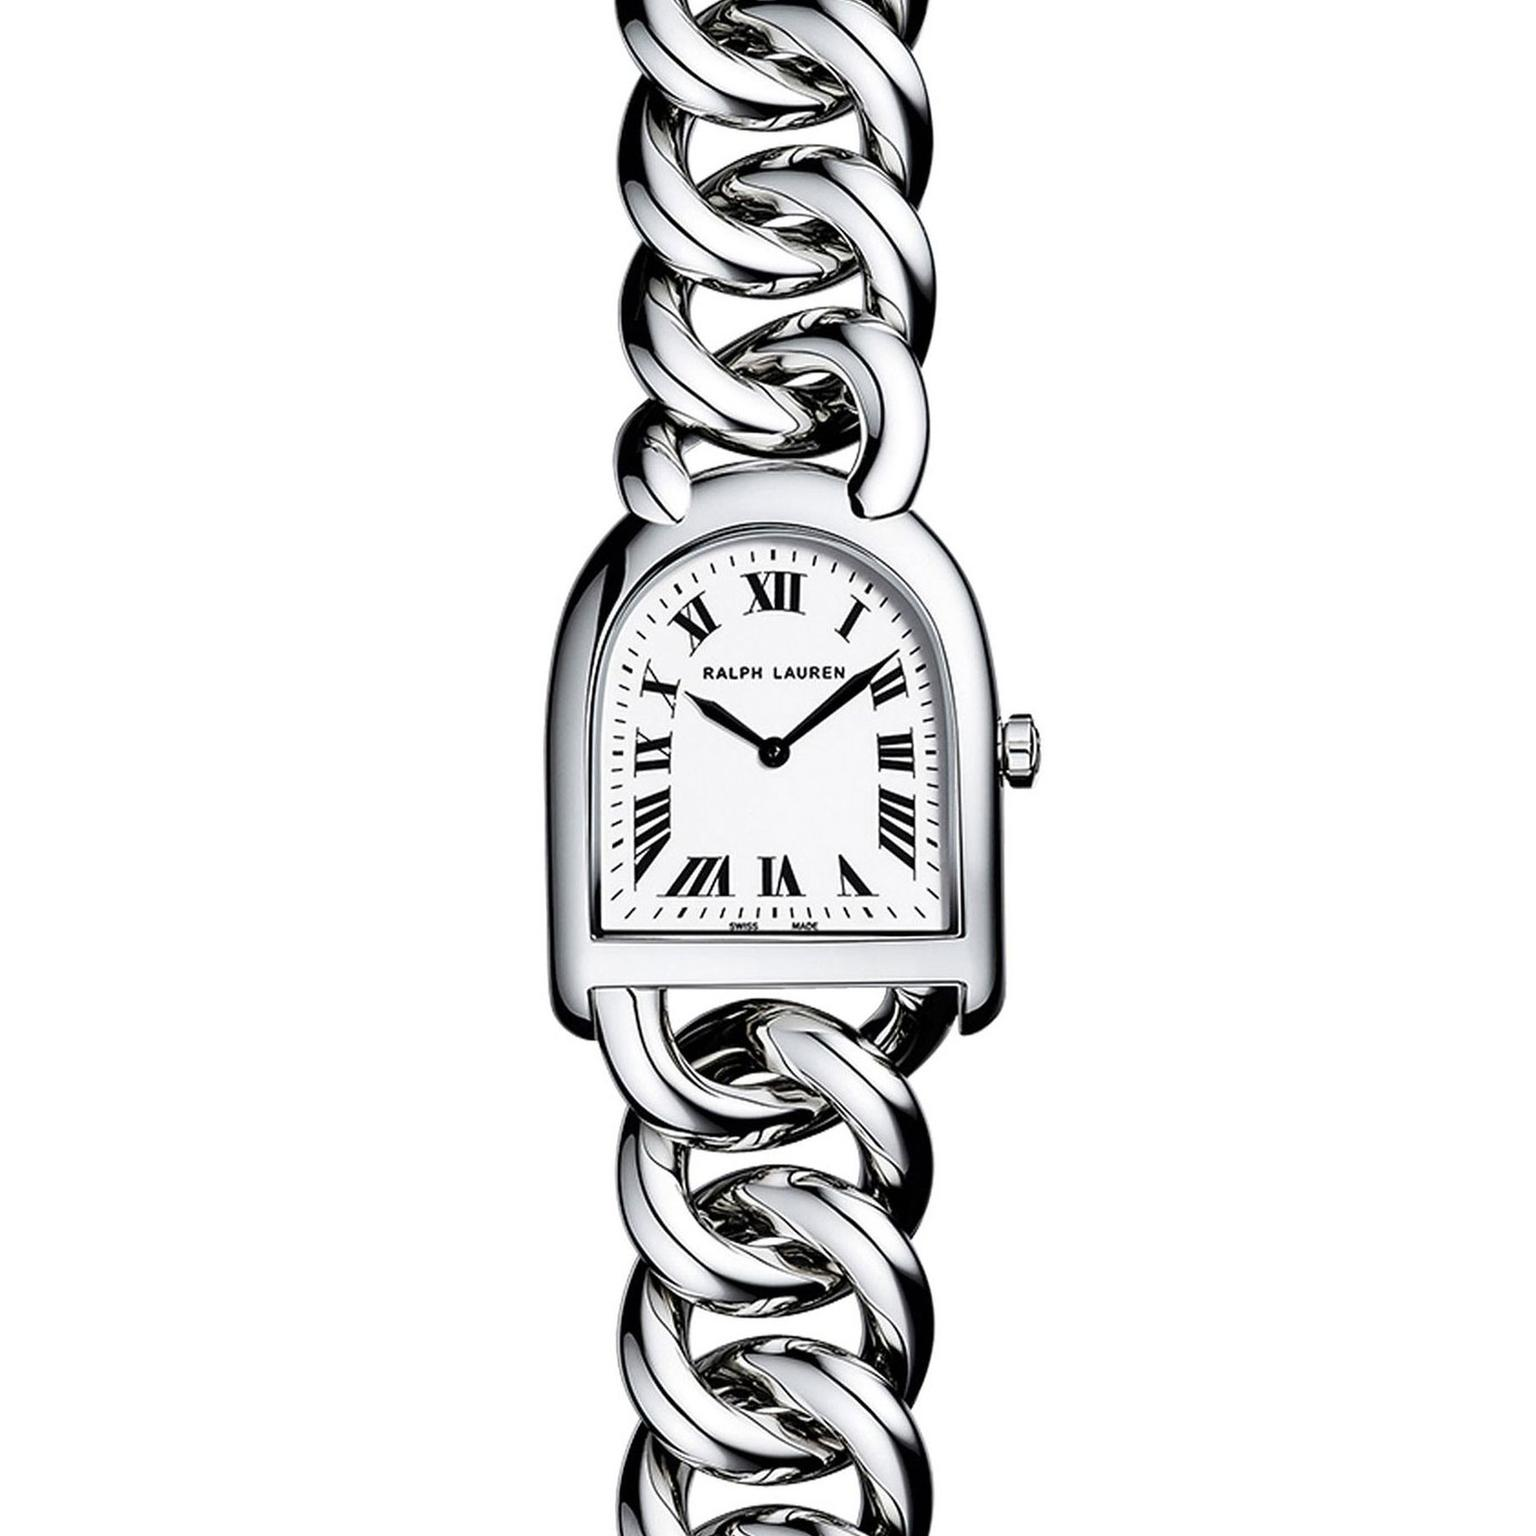 Ralph Lauren Petite Stirrup watch in steel_20131220_Zoom